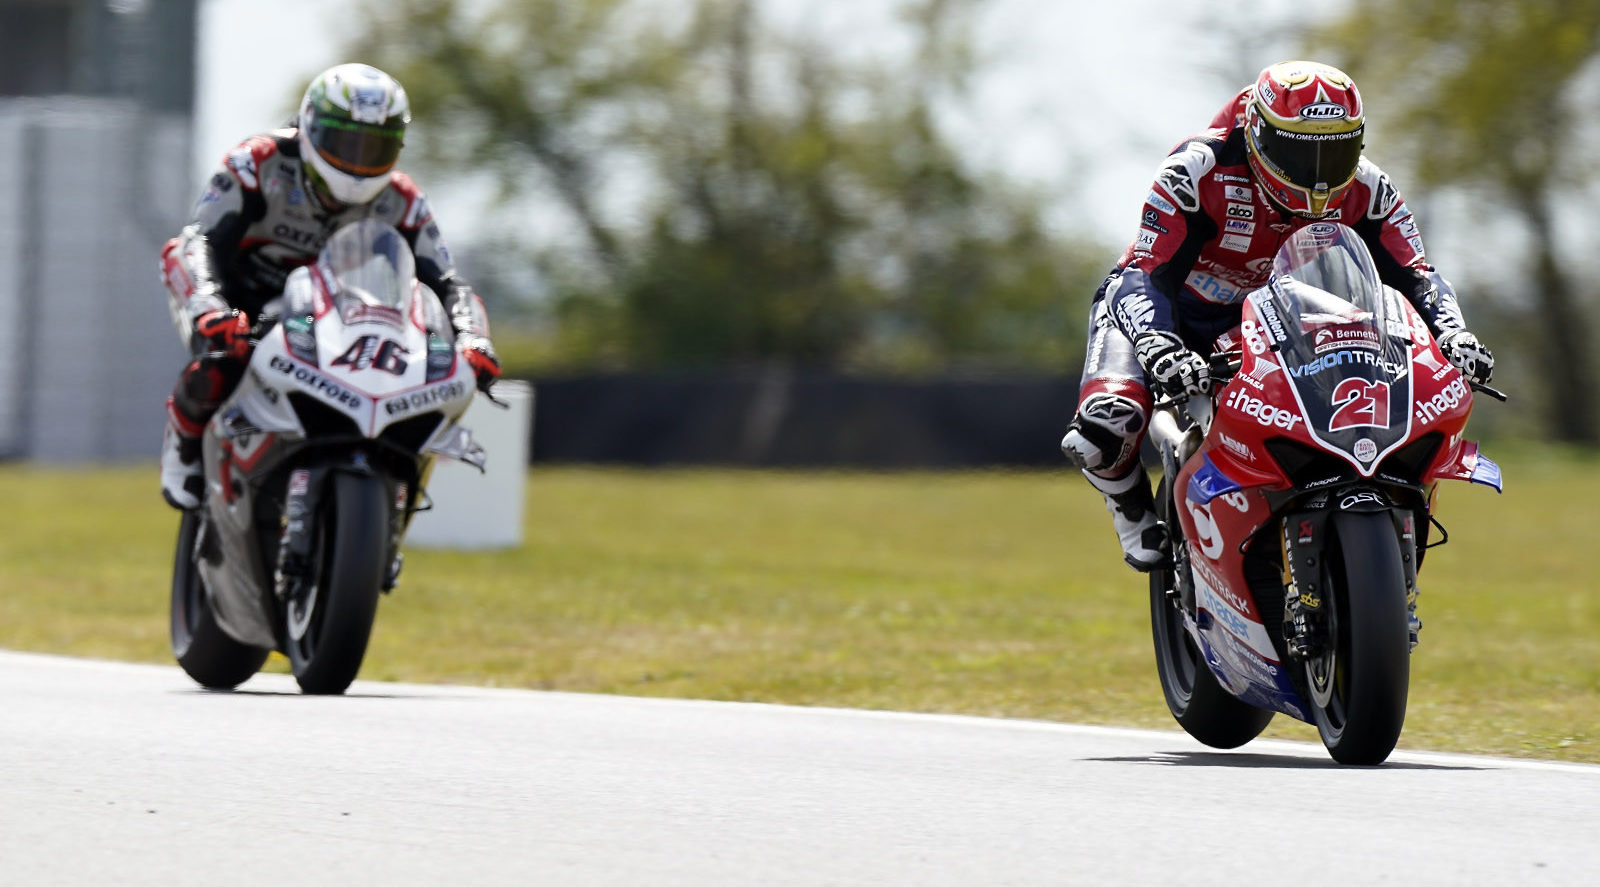 Christian Iddon (21) and Tommy Bridewell (46) testing at Snetterton. Photo courtesy MSVR.